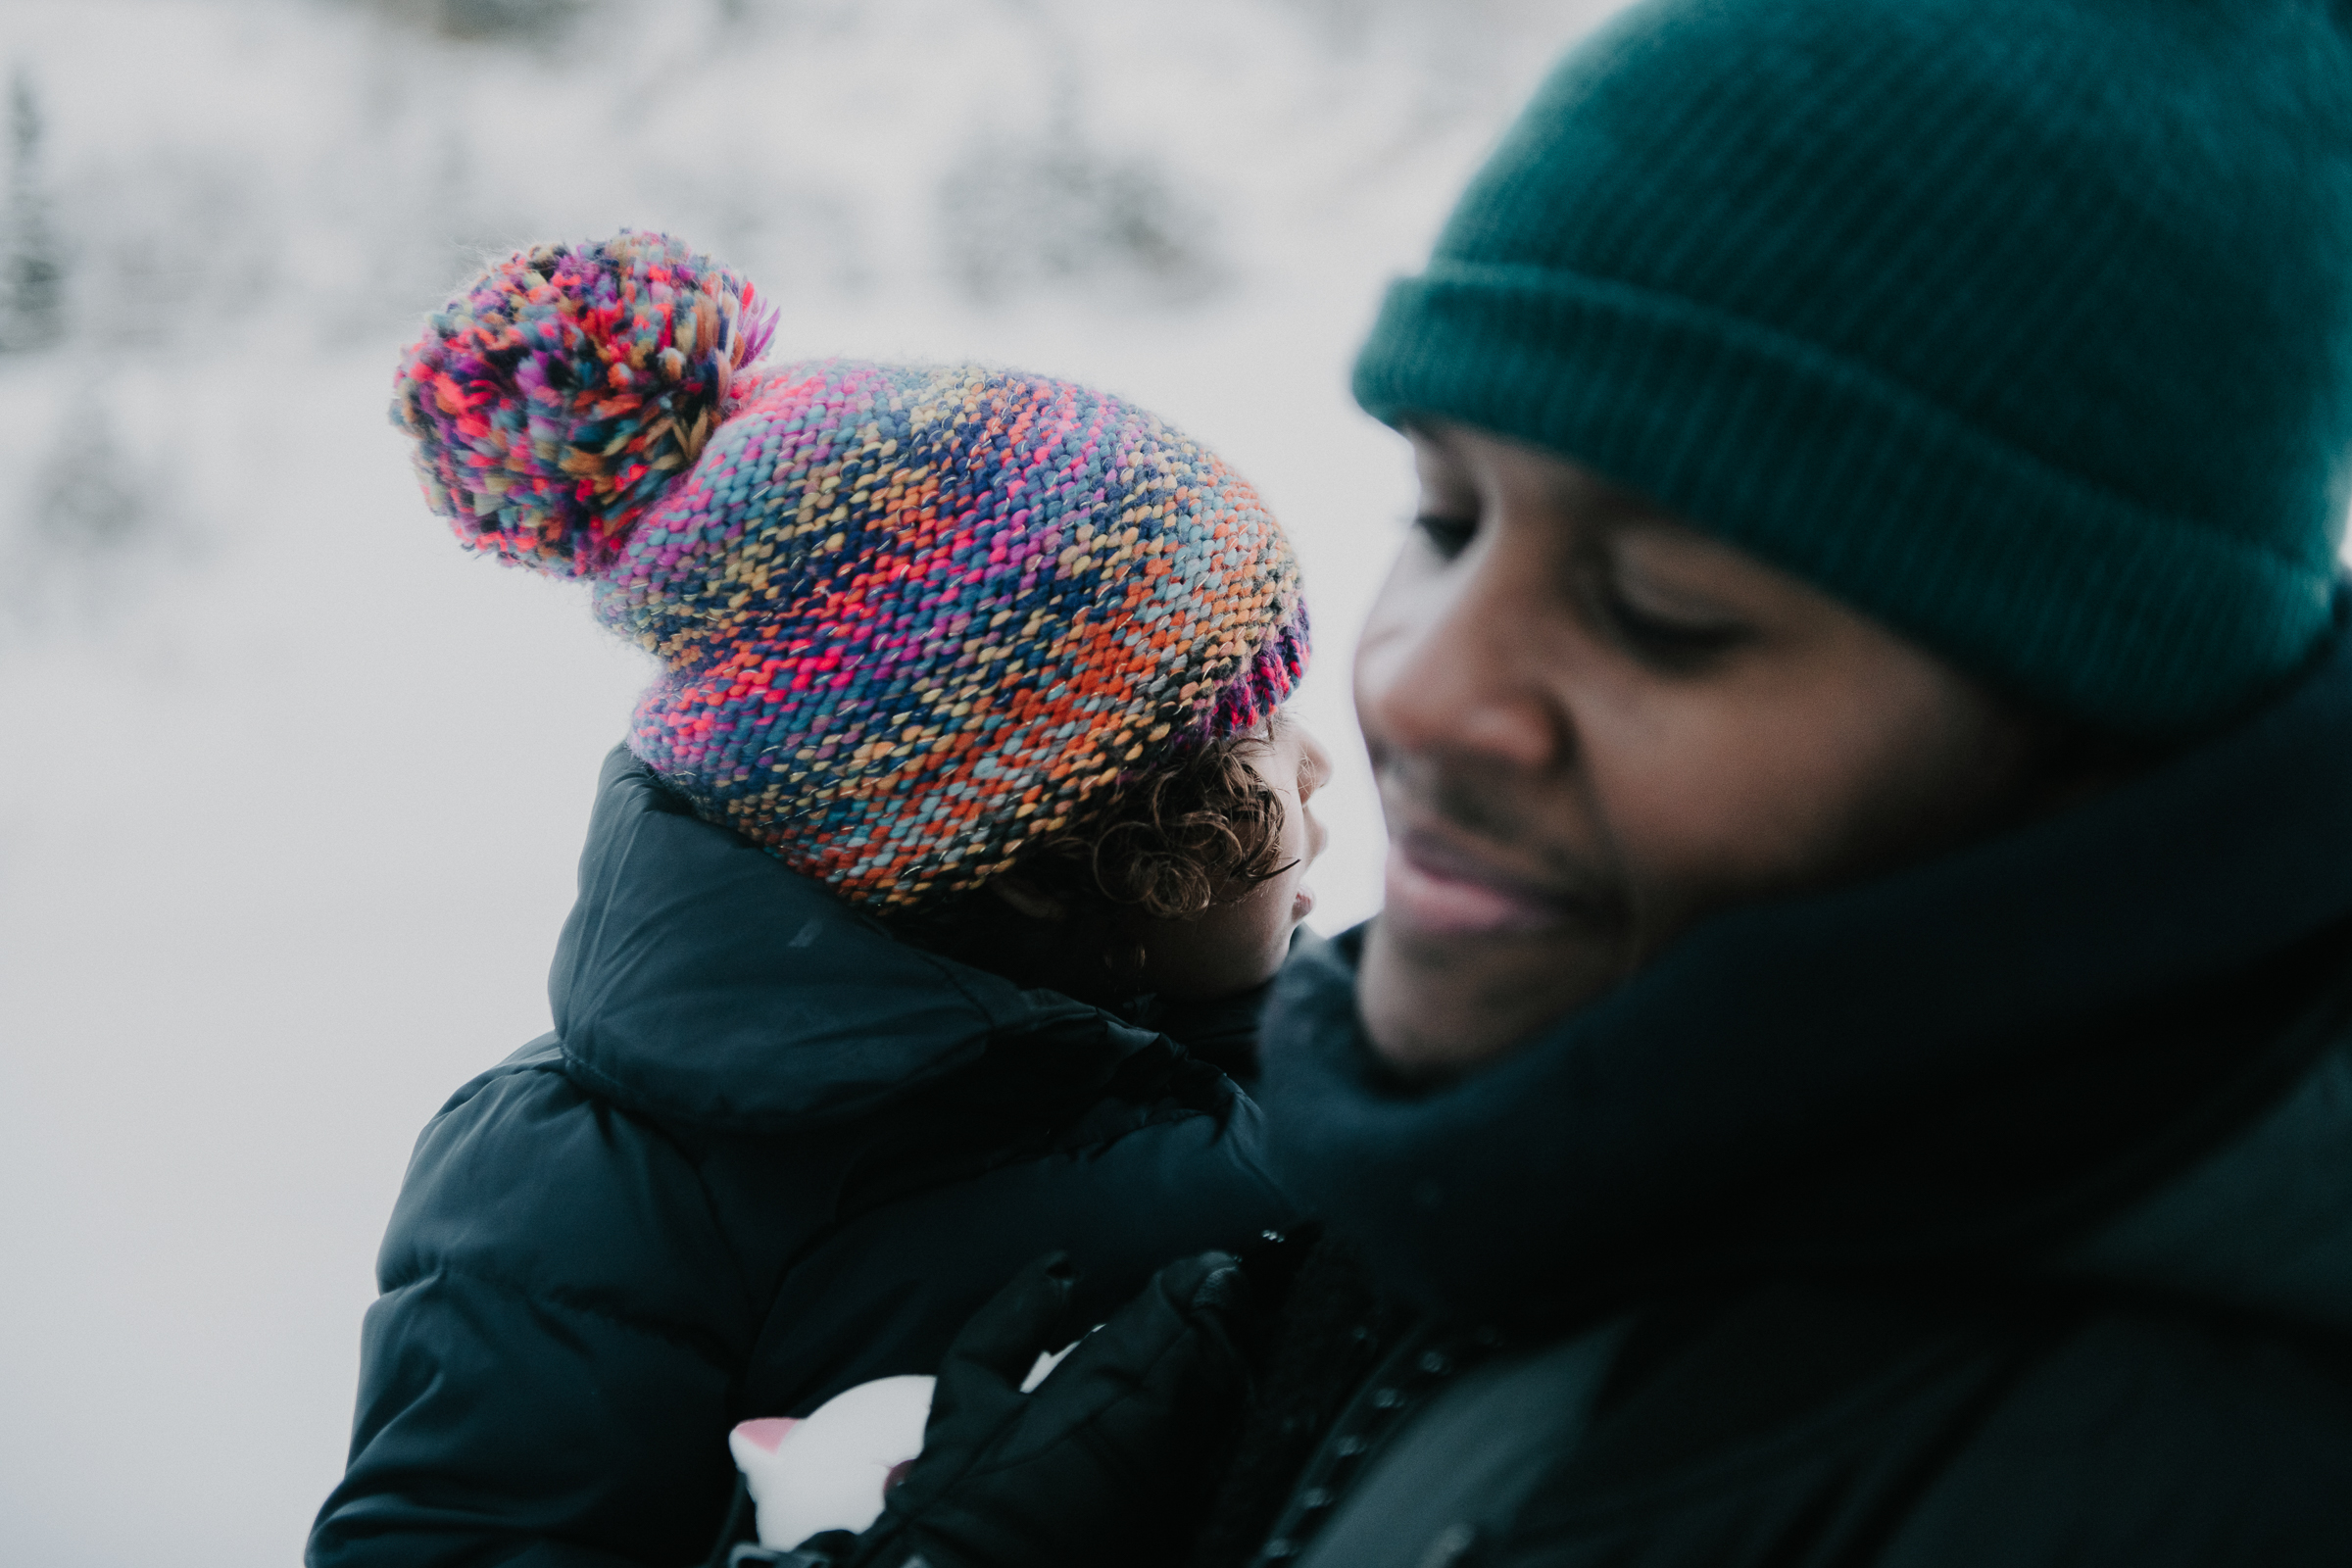 Dad and daughter in snowy mountain